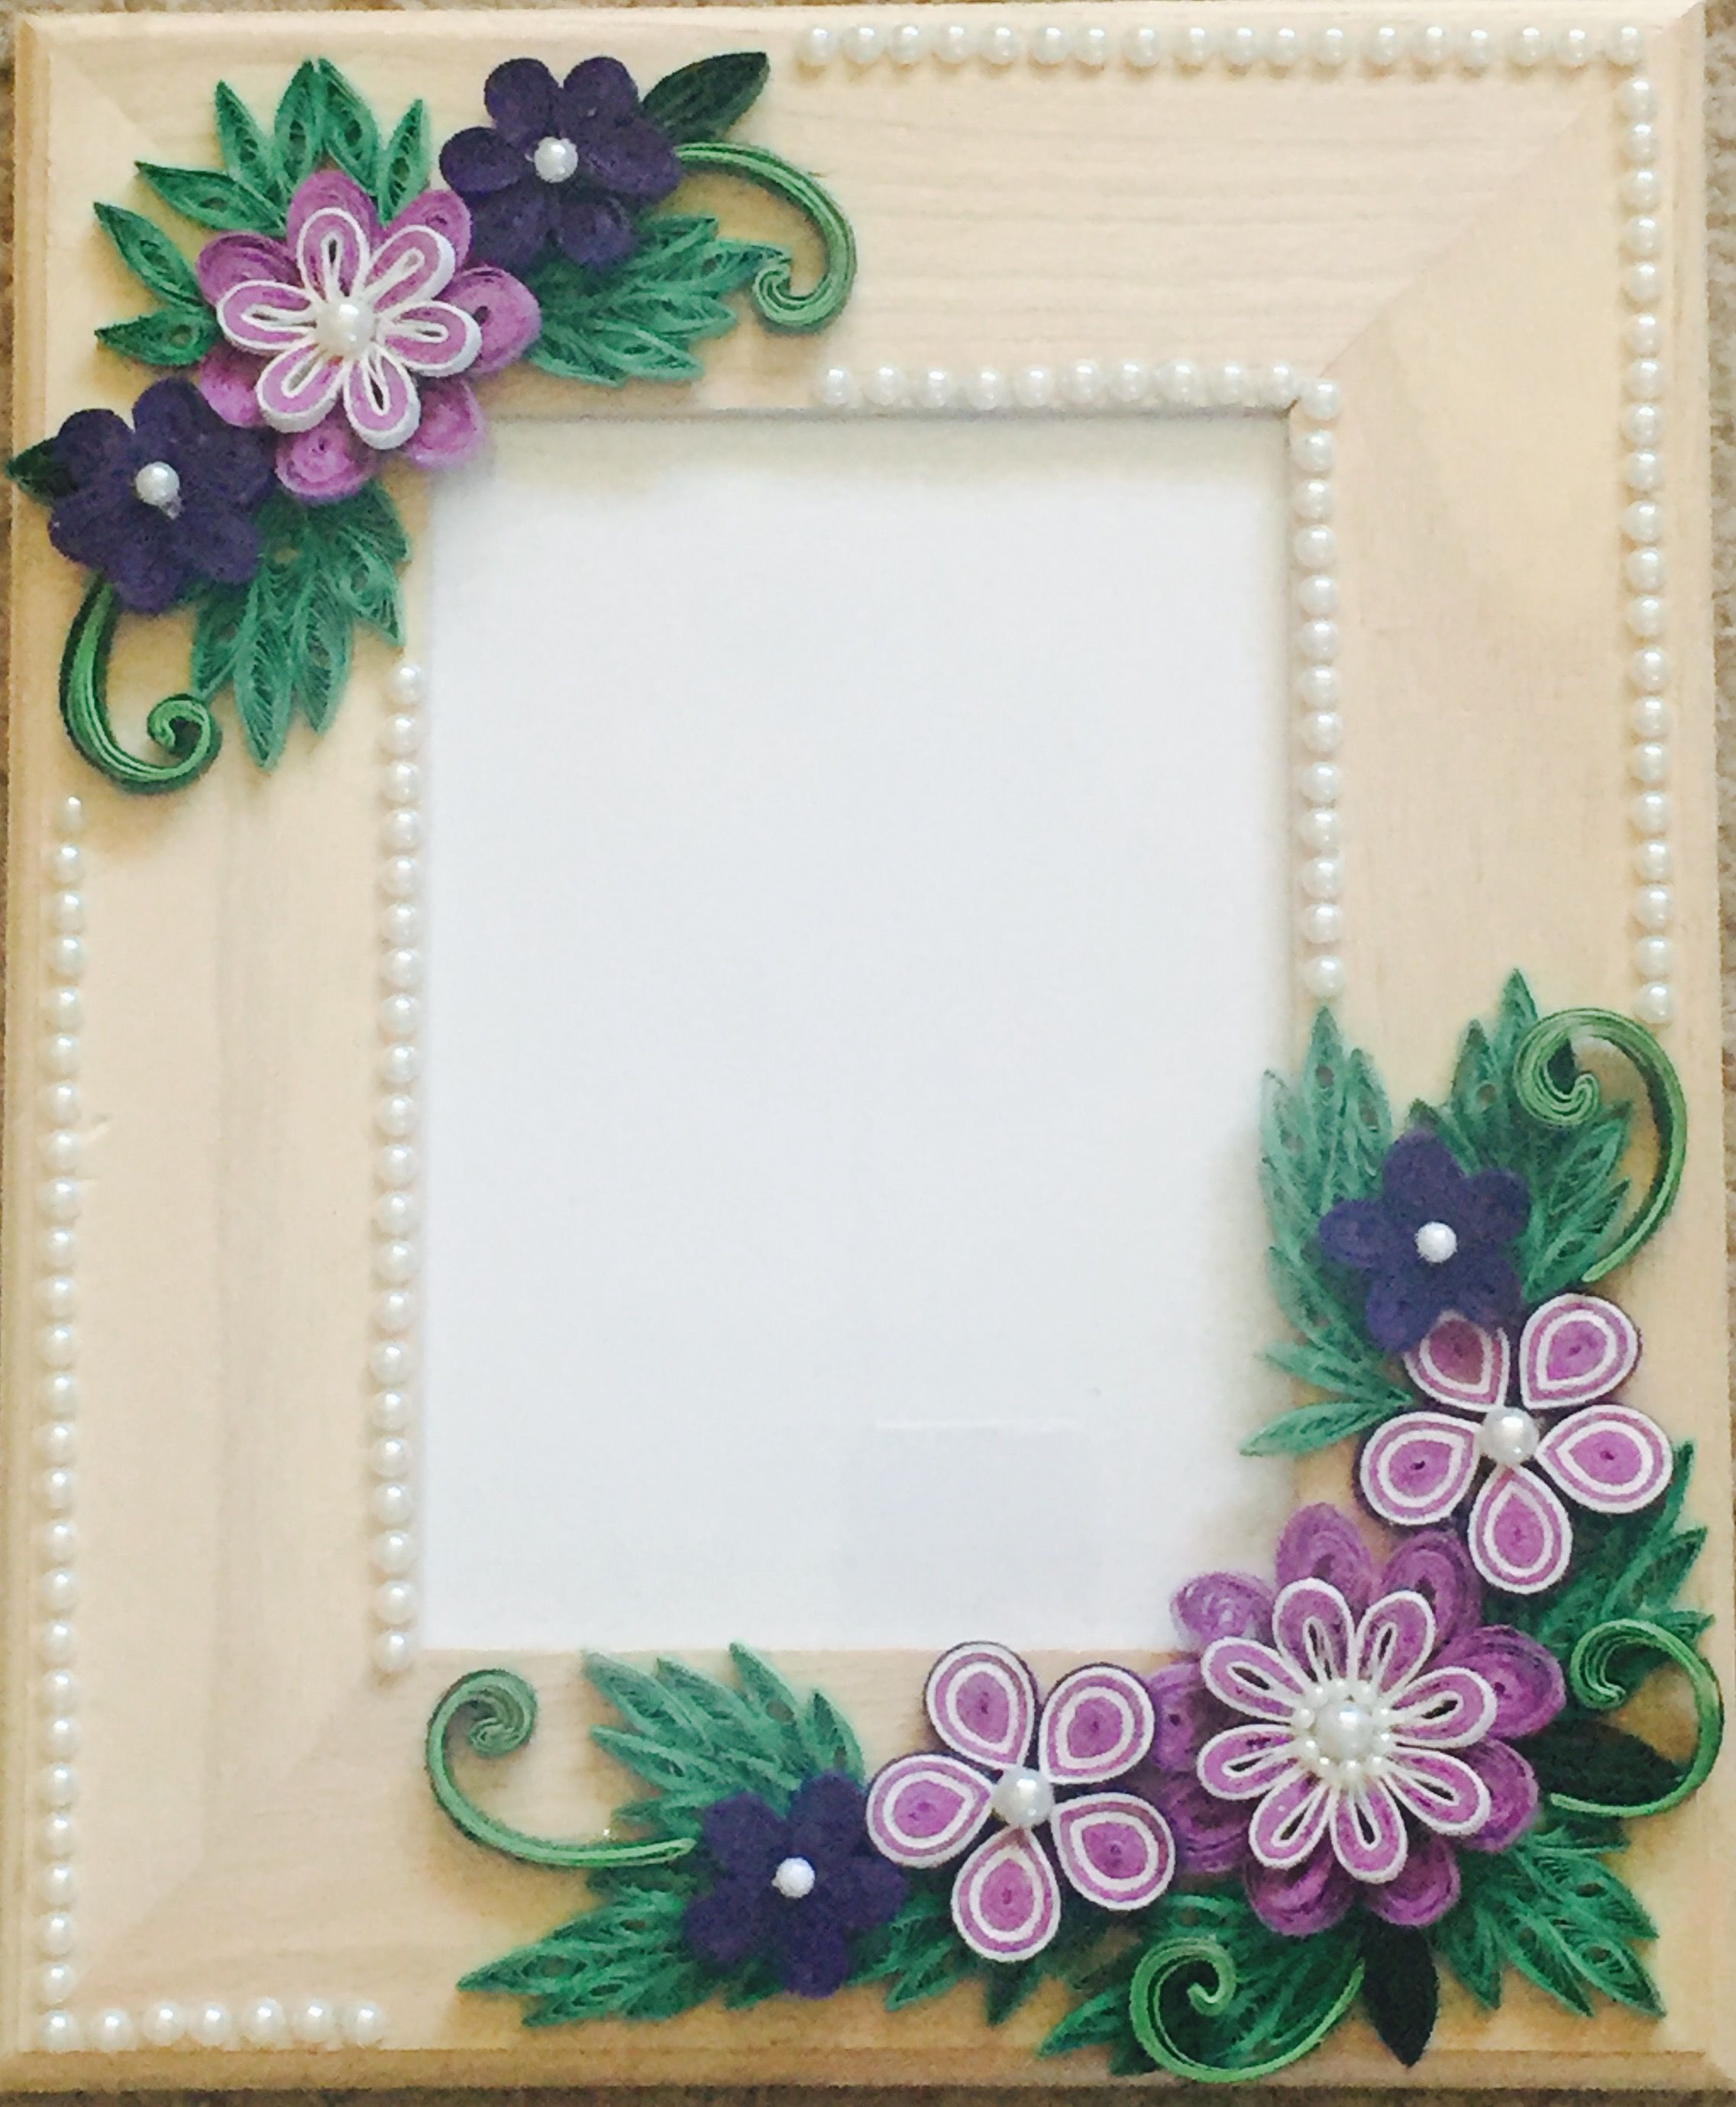 Pin by isabel cedeno on frame quilling | Pinterest | Quilling, Paper ...